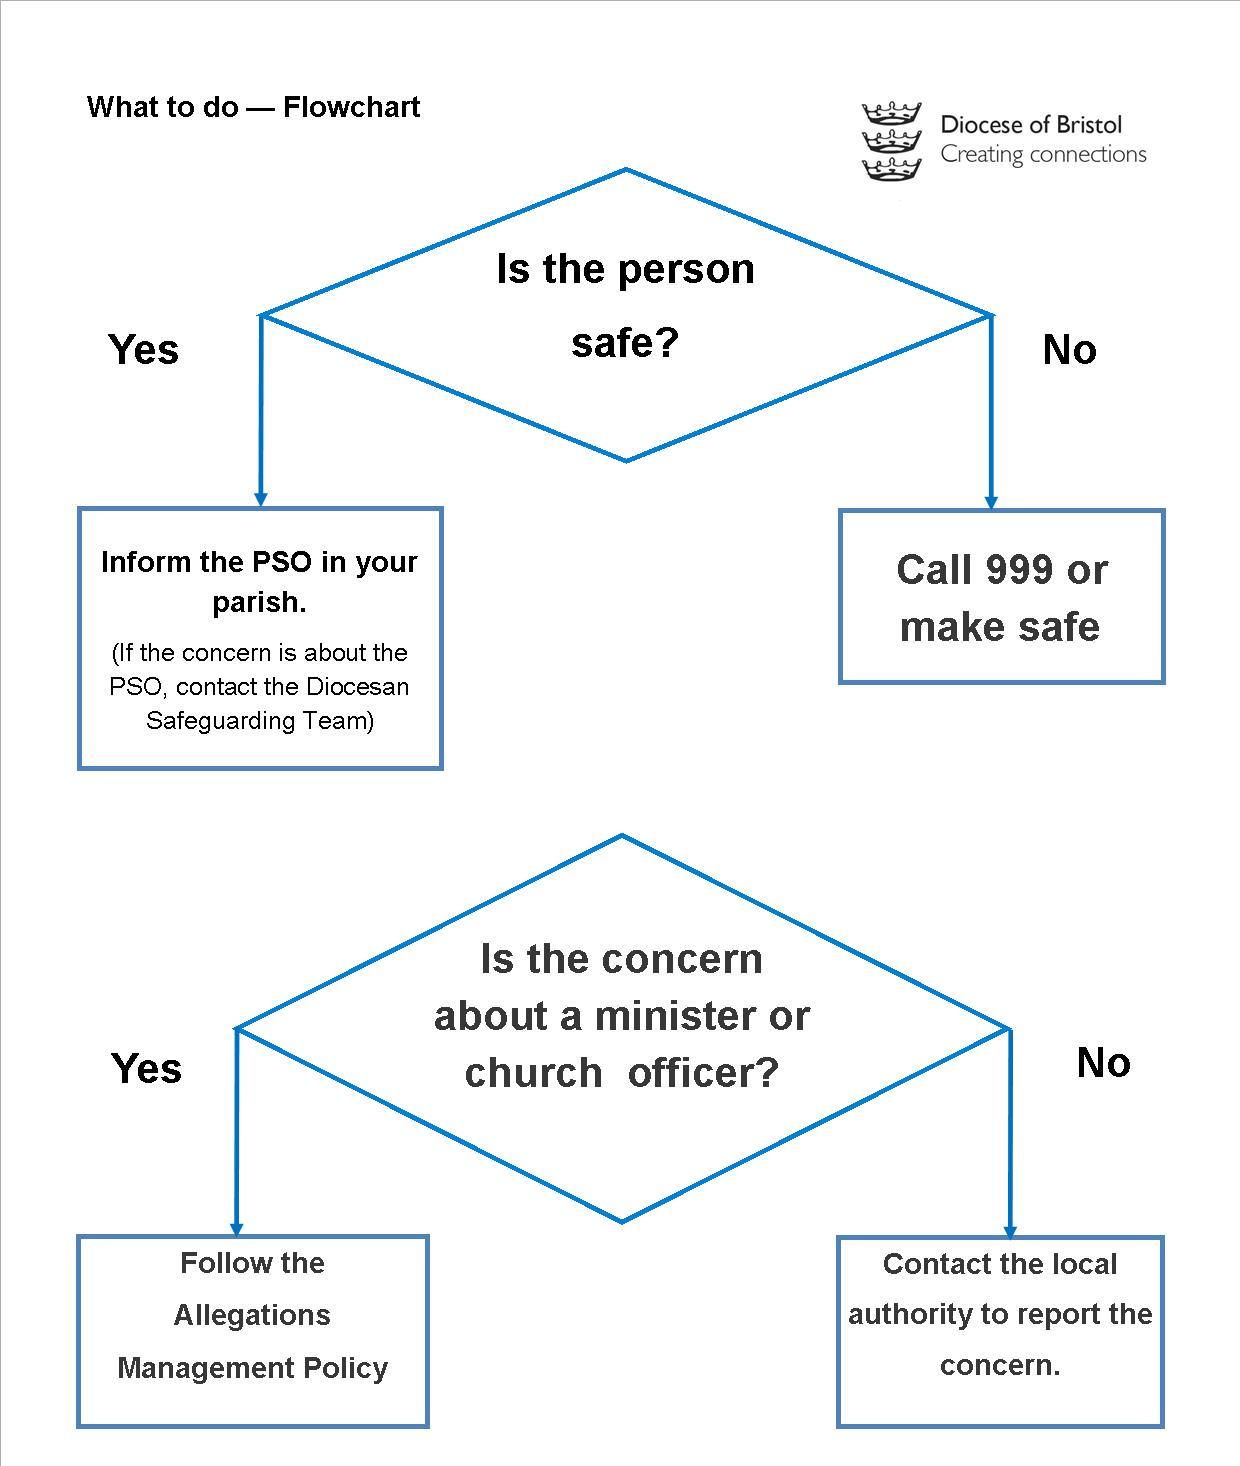 A flowchart describing the process for alerting the relevant authorities to allegations of abuse.